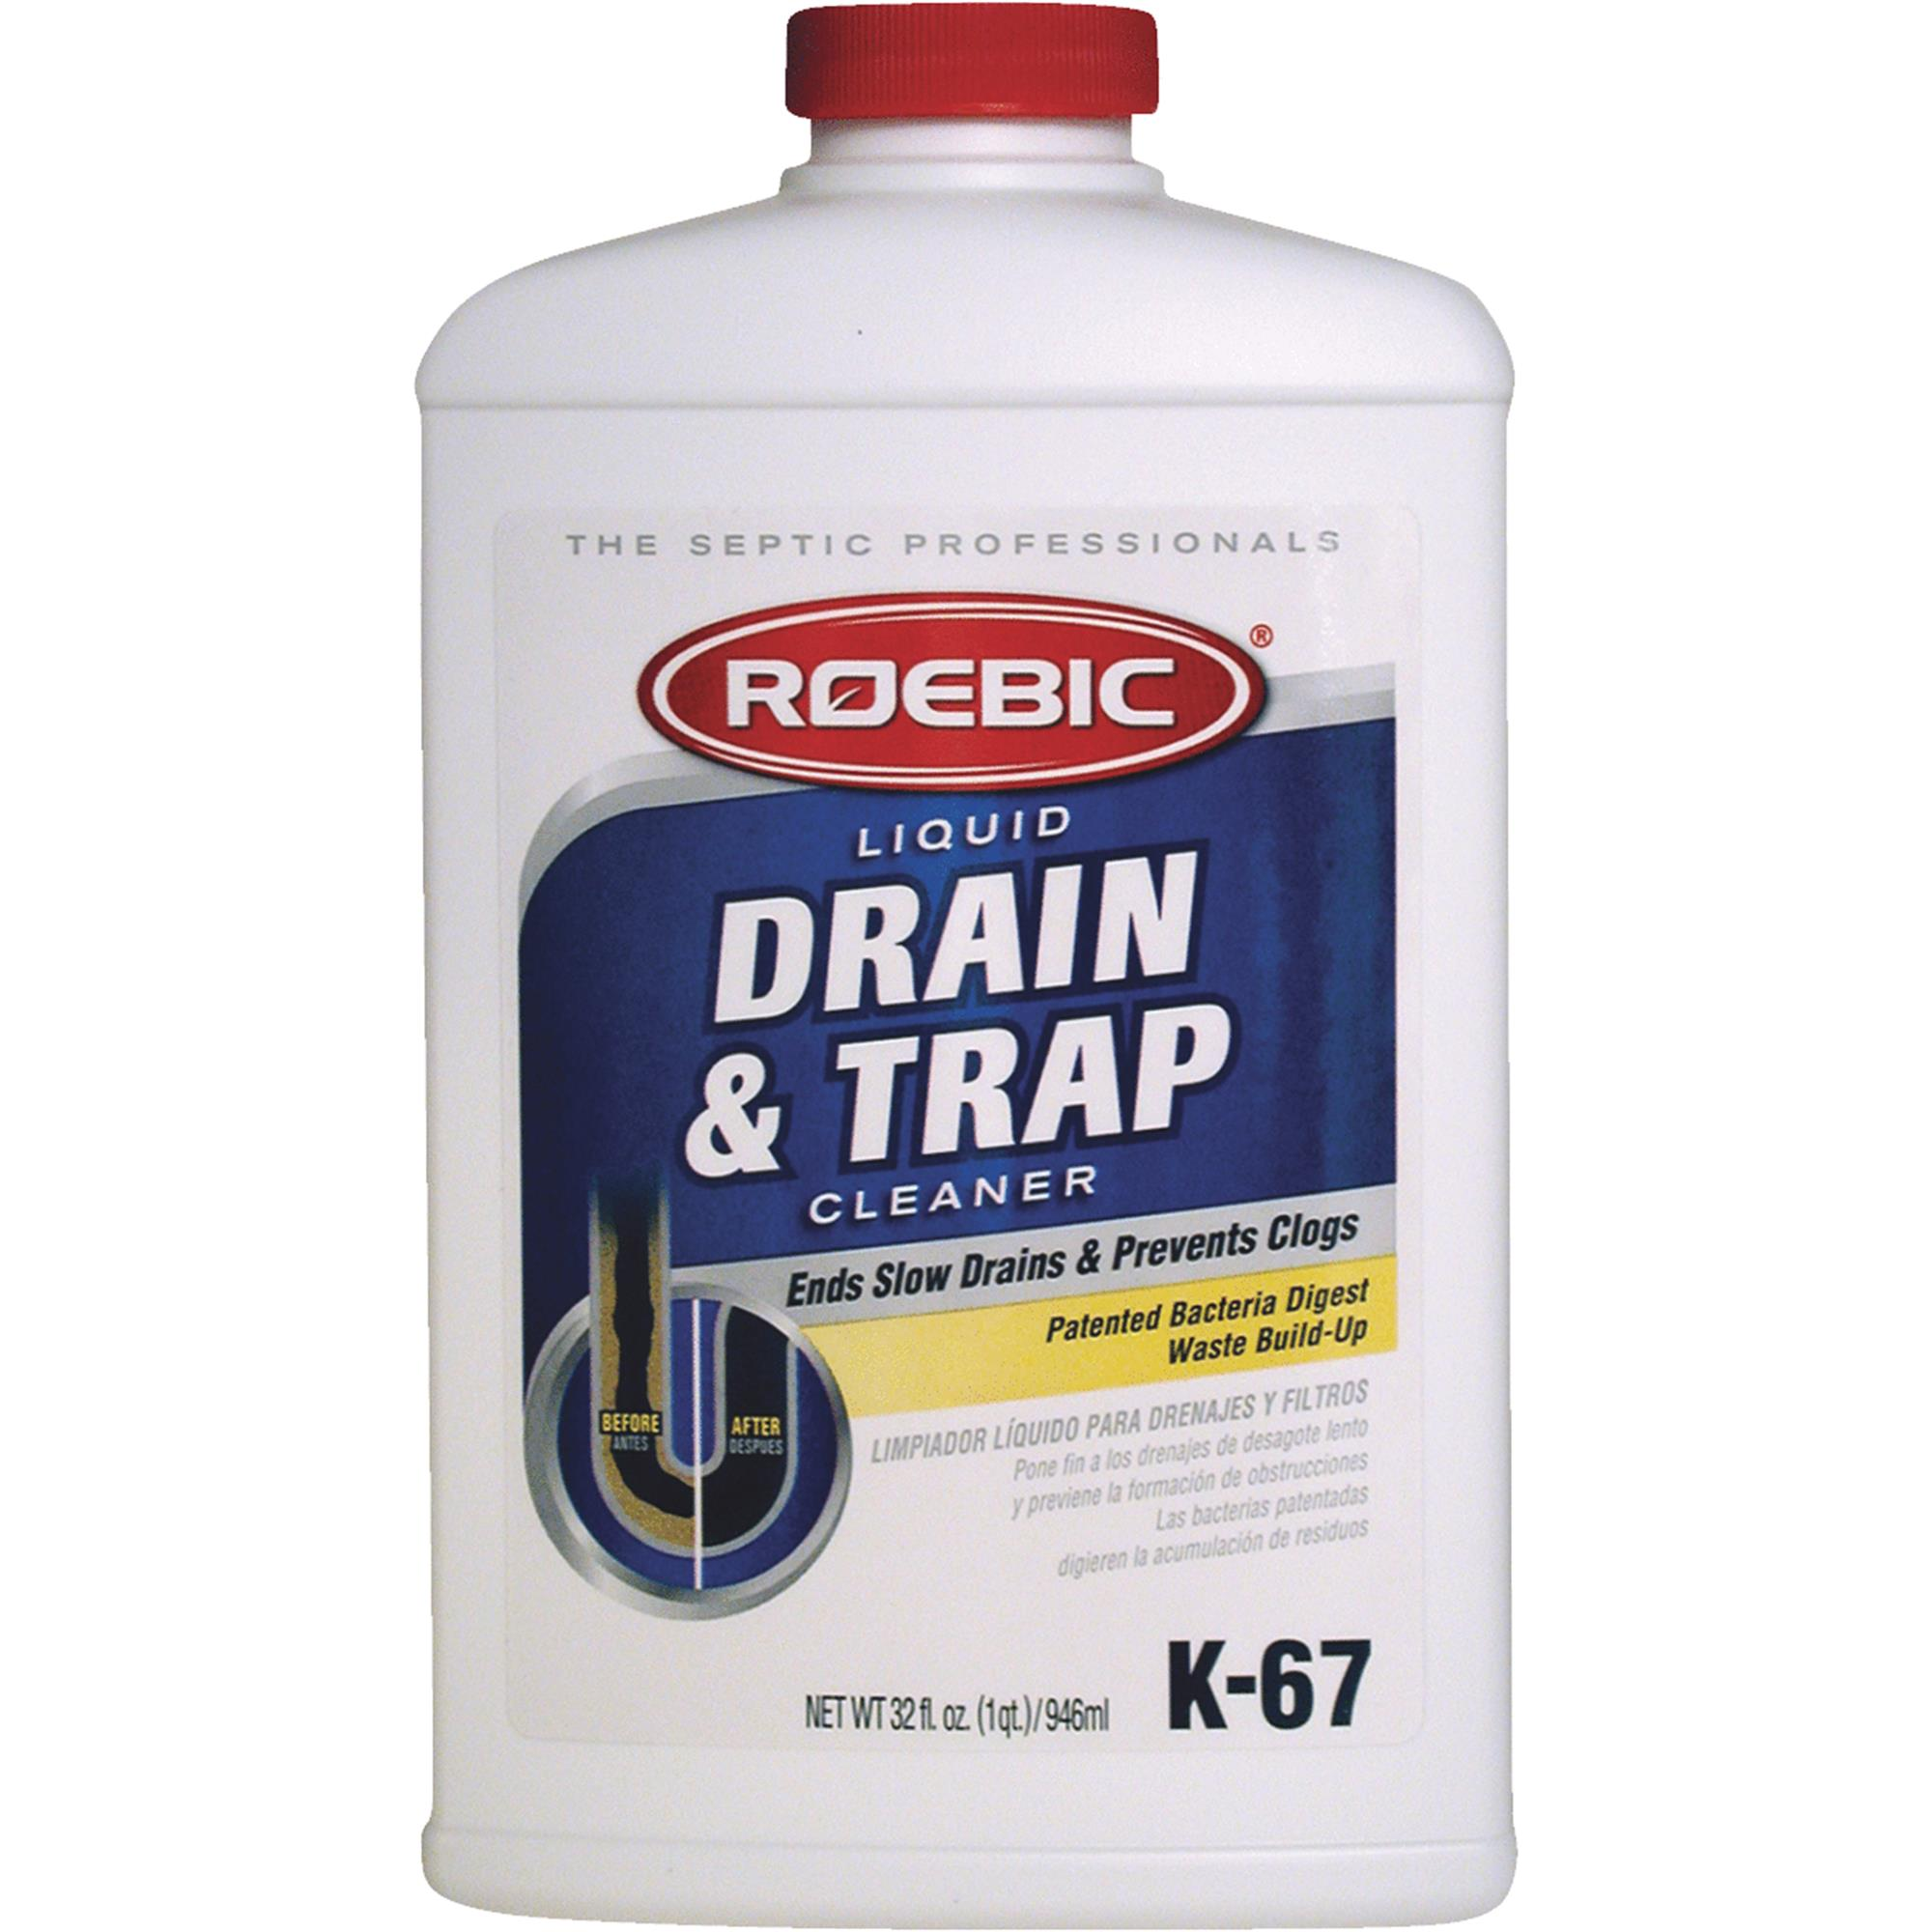 Roebic Drain & Trap Cleaner